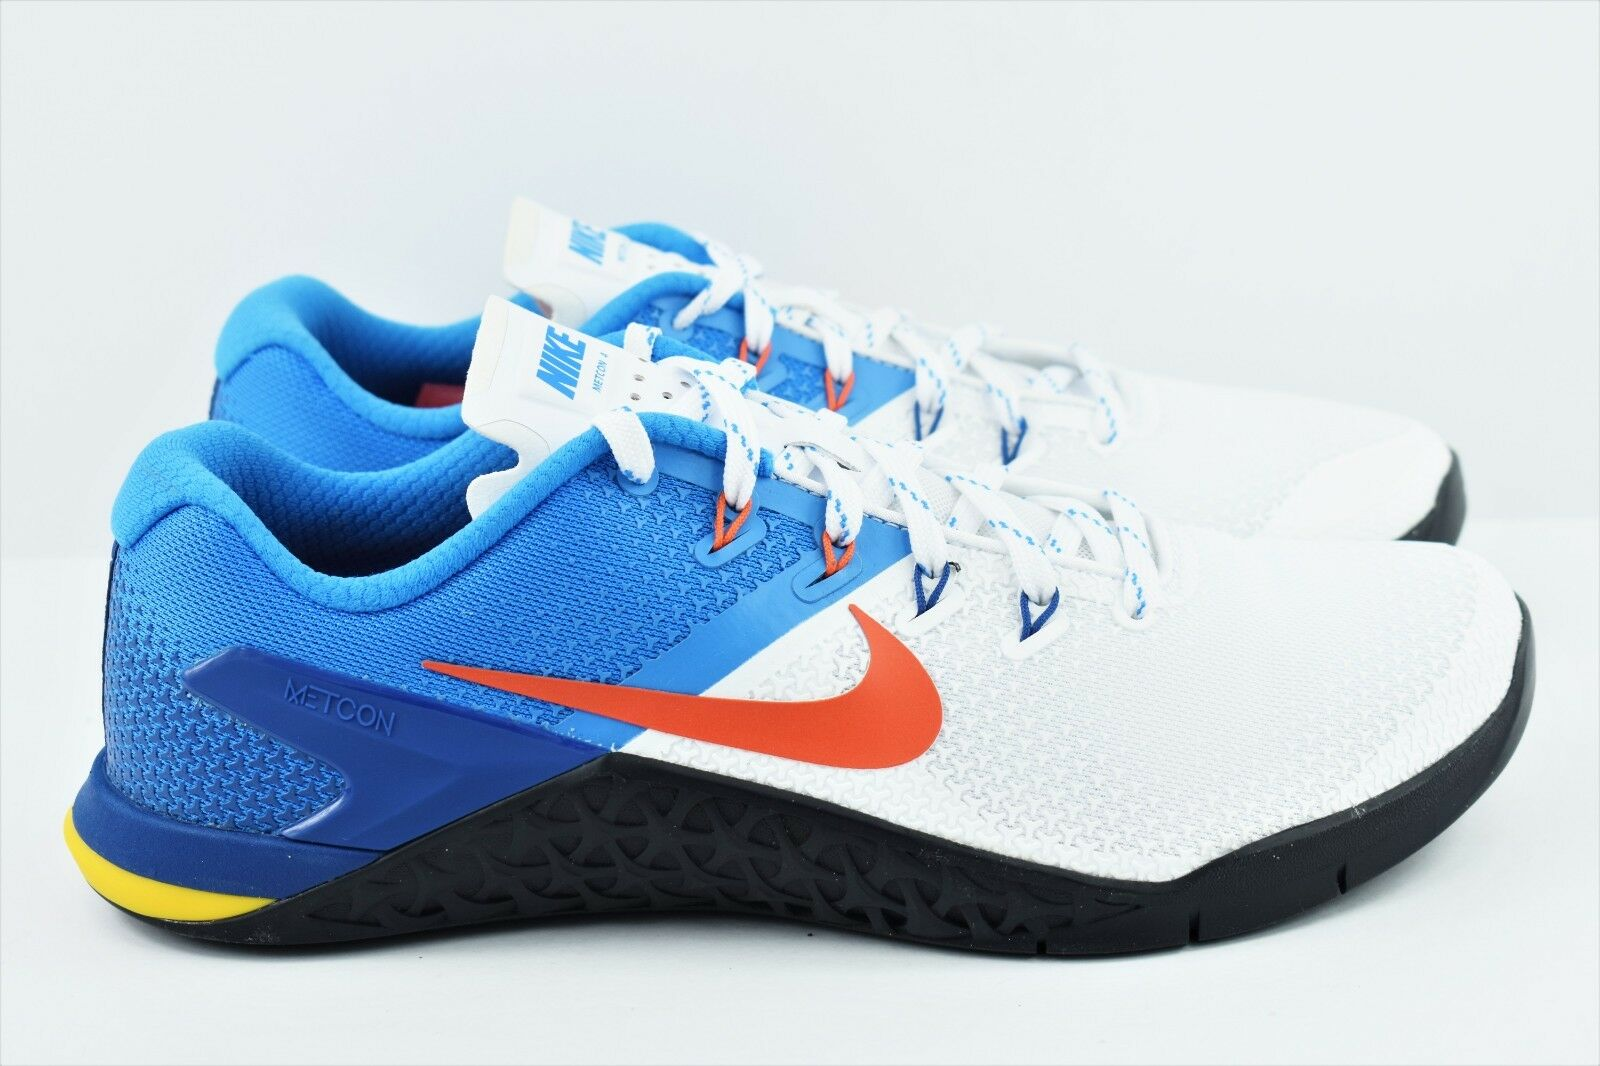 Nike Metcon 4 Mens Size 8 Training Weightlifting shoes AH7453 184 White bluee